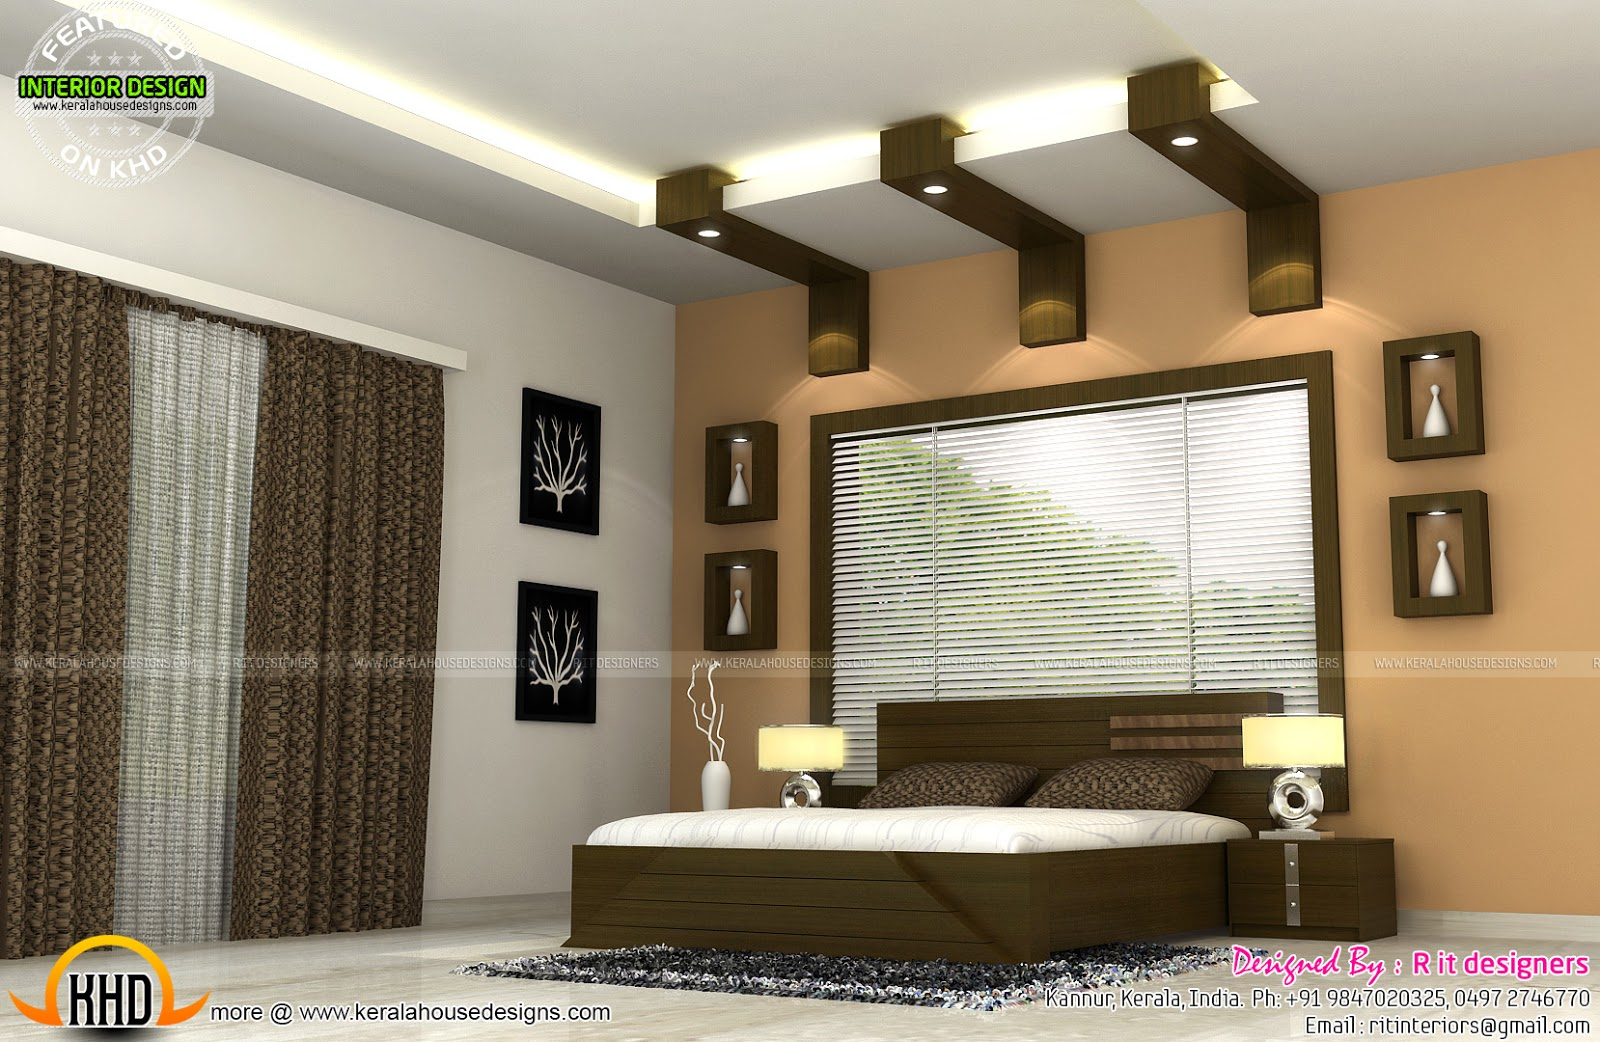 Interiors of bedrooms and kitchen kerala home design and for Interior home design bedroom ideas